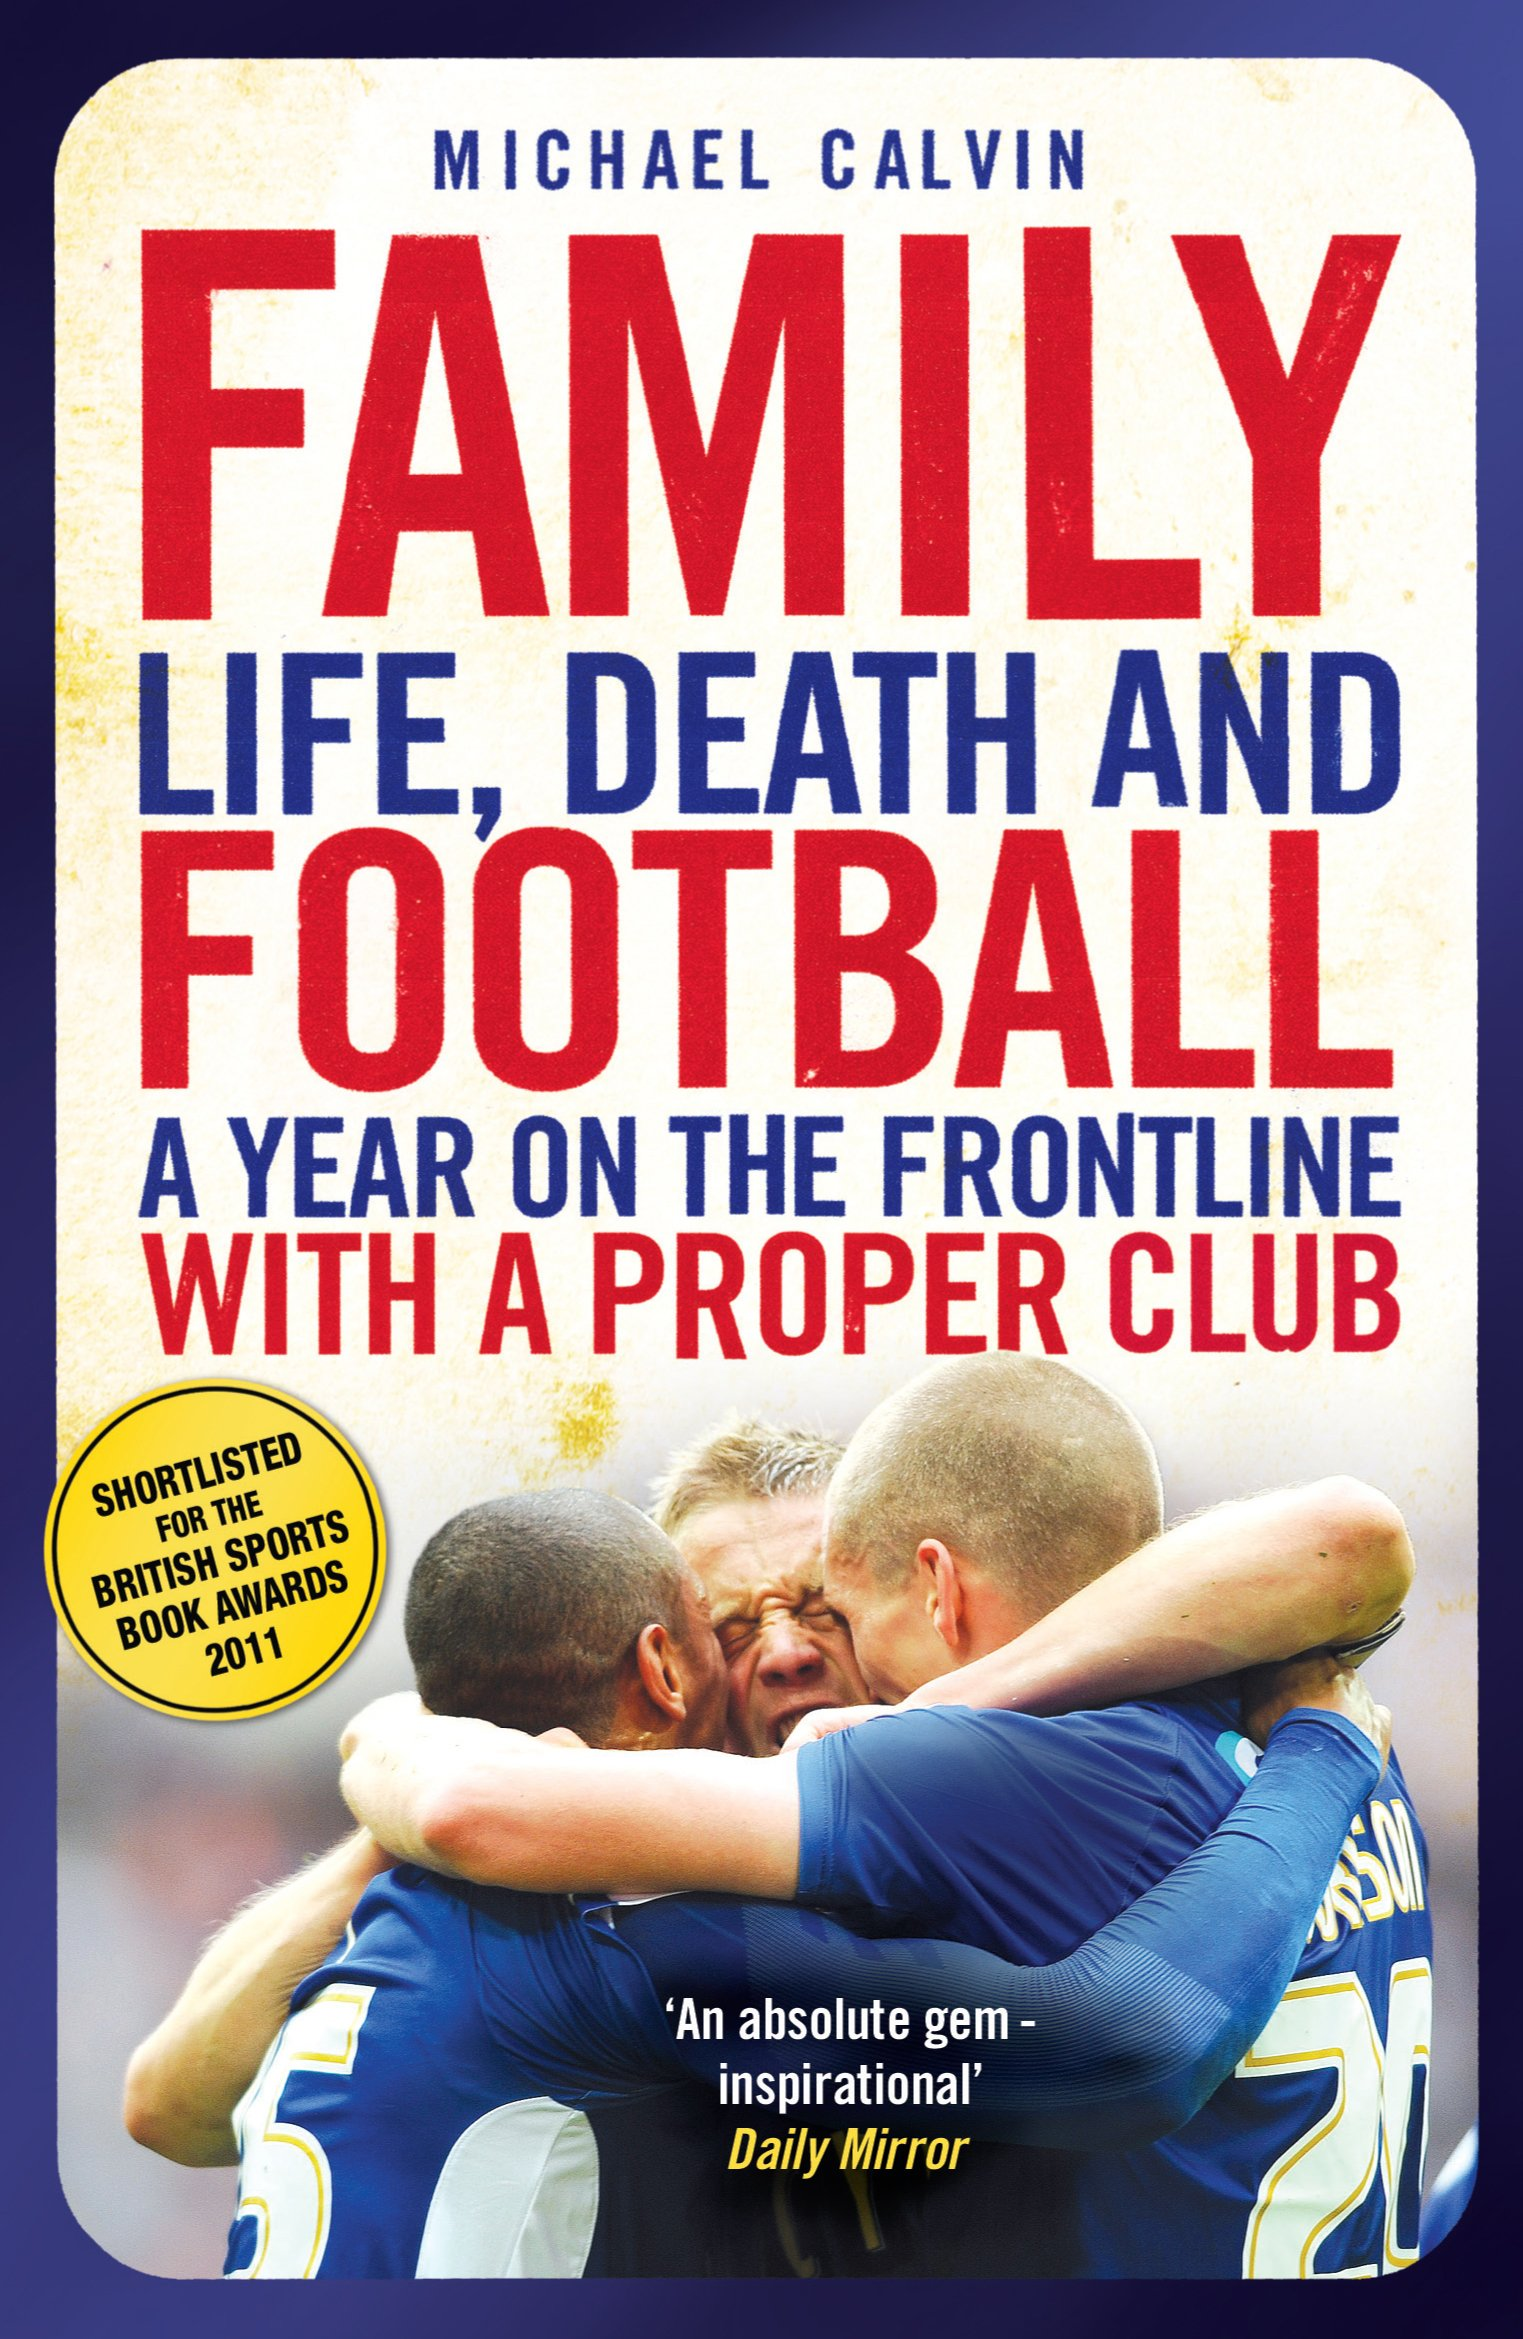 Family: Life, Death and Football - A Year on the Frontline with a Proper Club